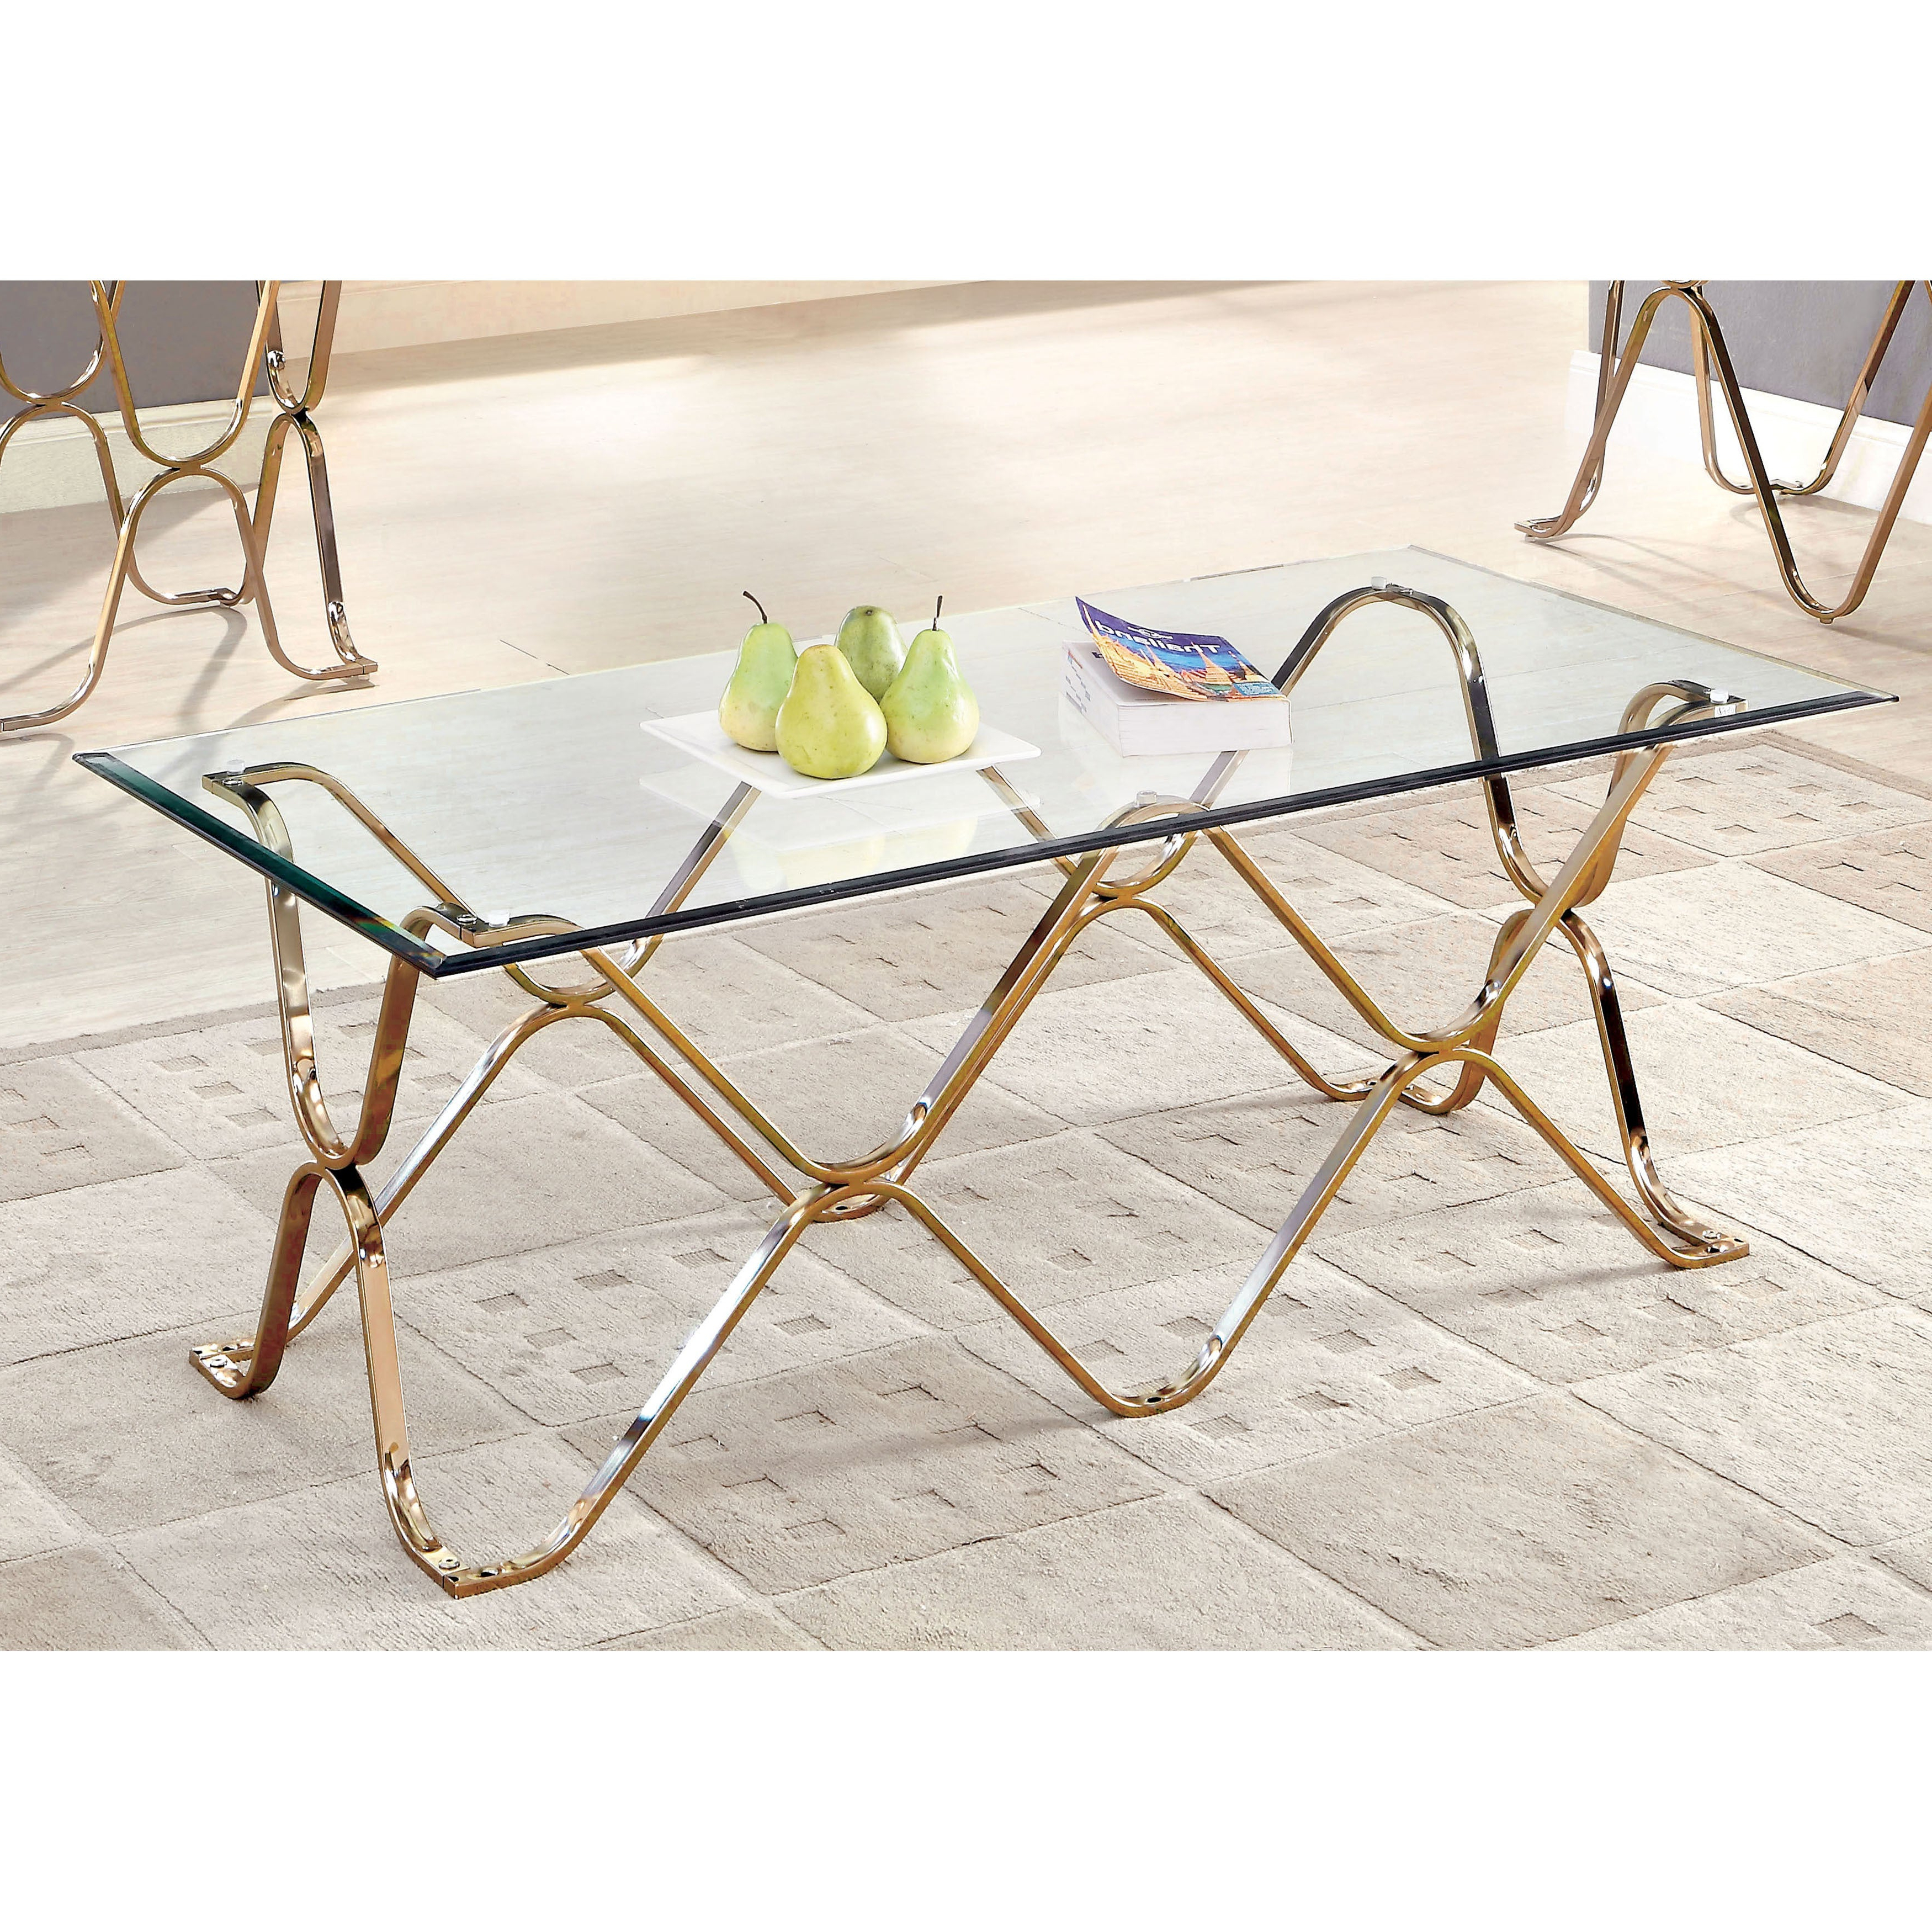 Furniture Of America Tellarie Contemporary Champagne Coffee Table Pertaining To Favorite Furniture Of America Tellarie Contemporary Chrome Coffee Tables (View 7 of 20)